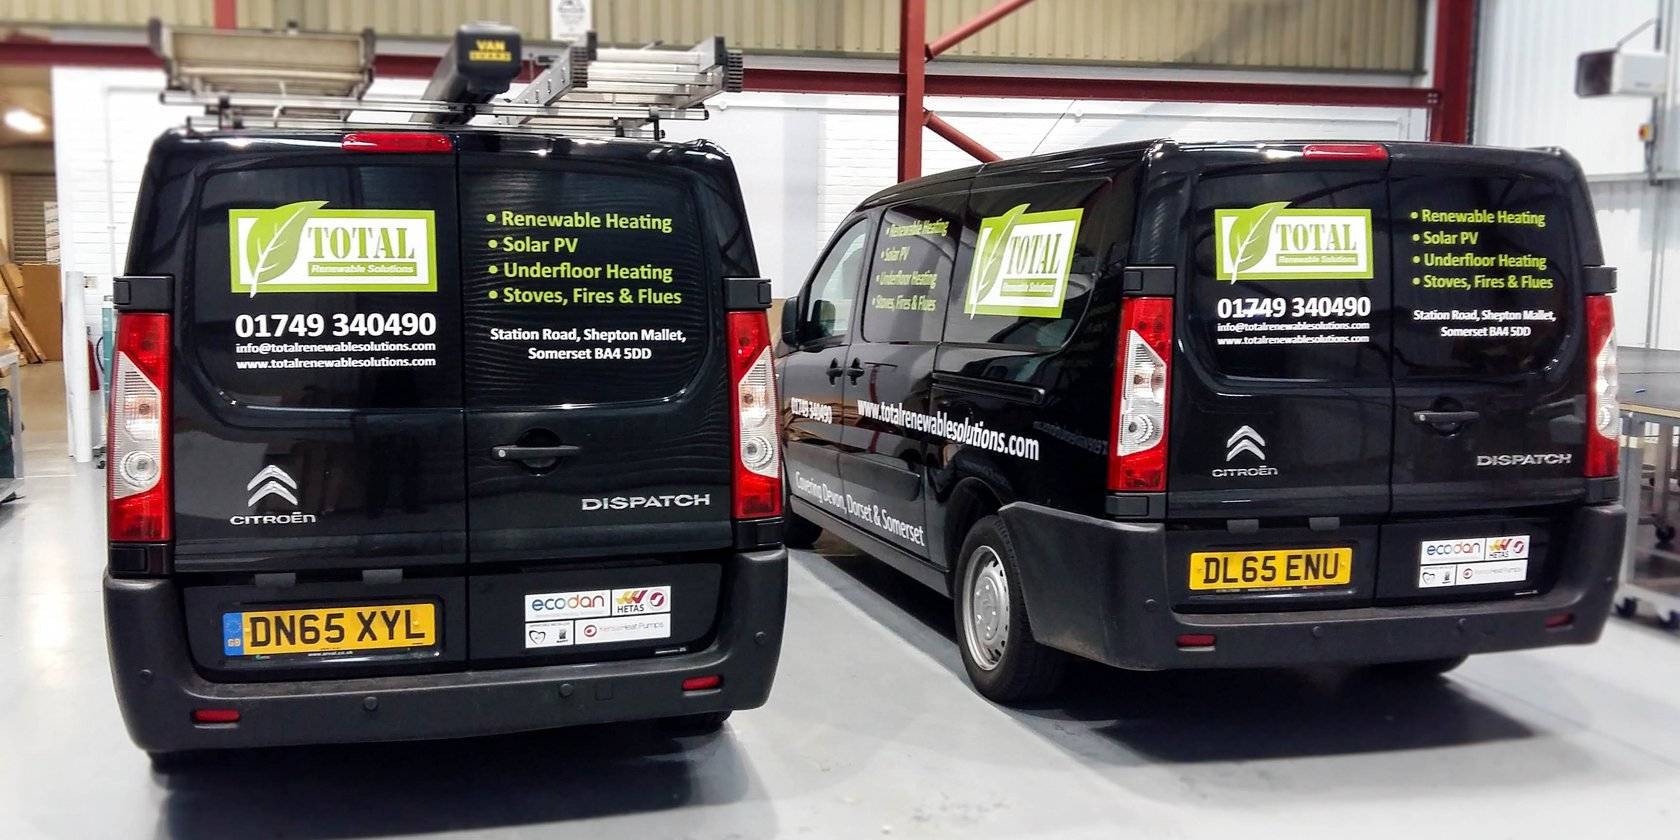 Van Graphics Total Renewable Solutions